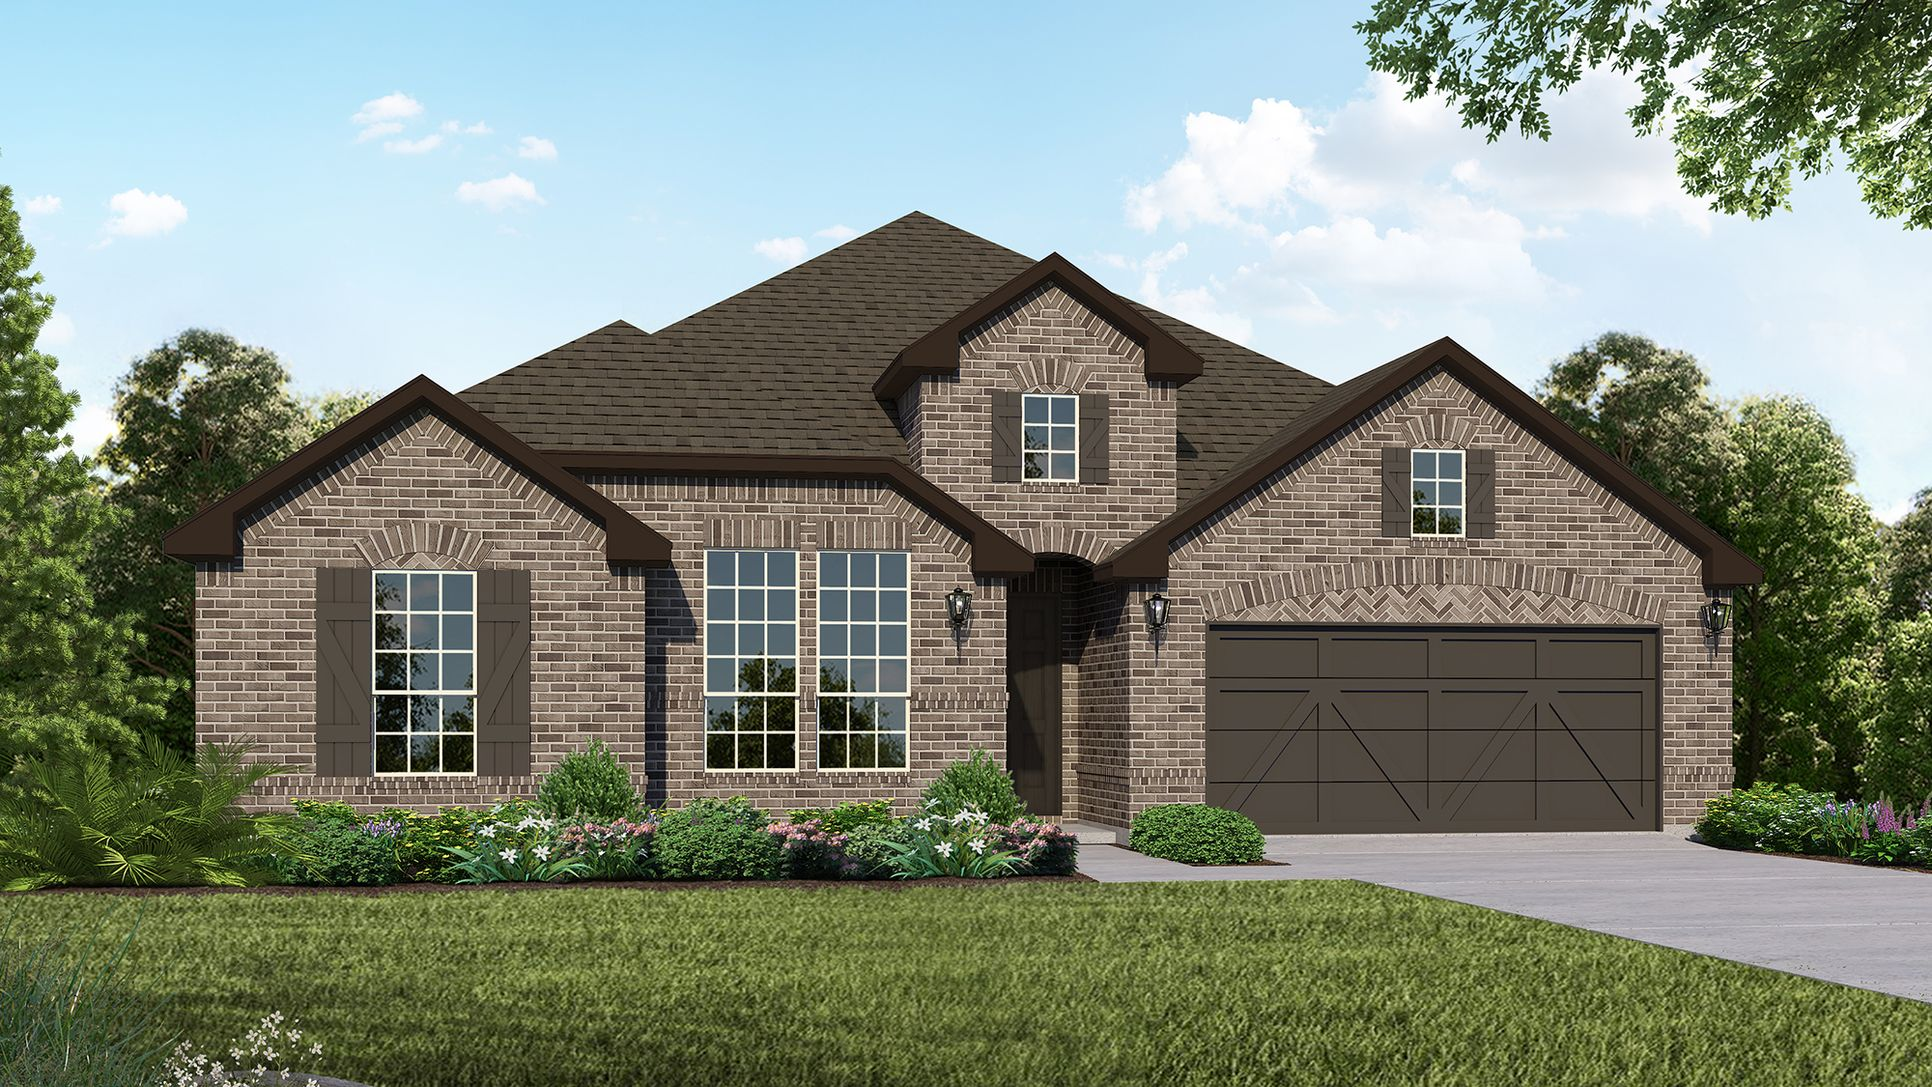 Exterior:Plan 1685 Elevation B by American Legend Homes